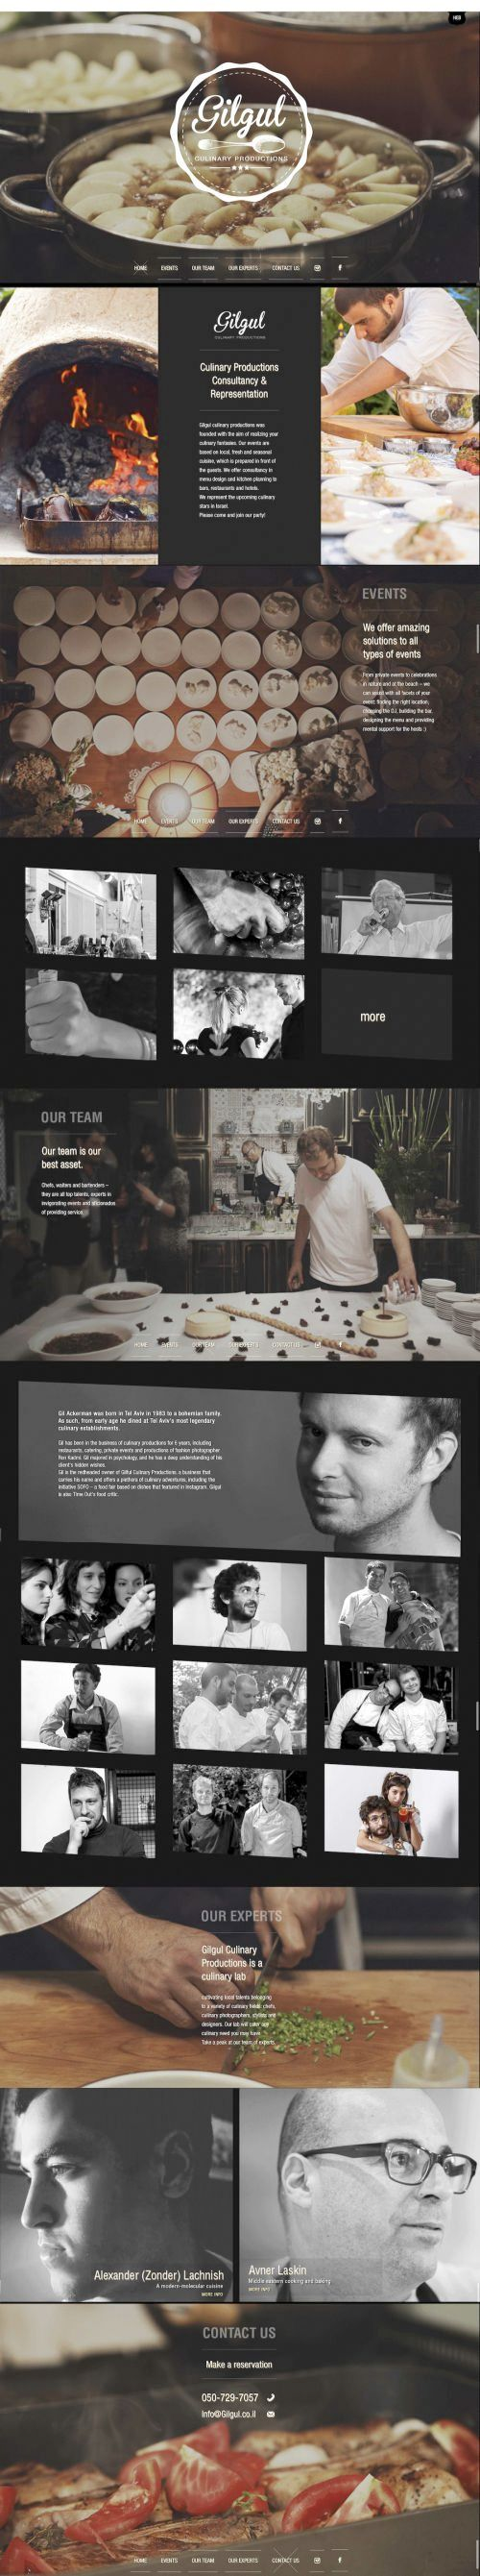 amazing restaurant website #webdesing #inspiration